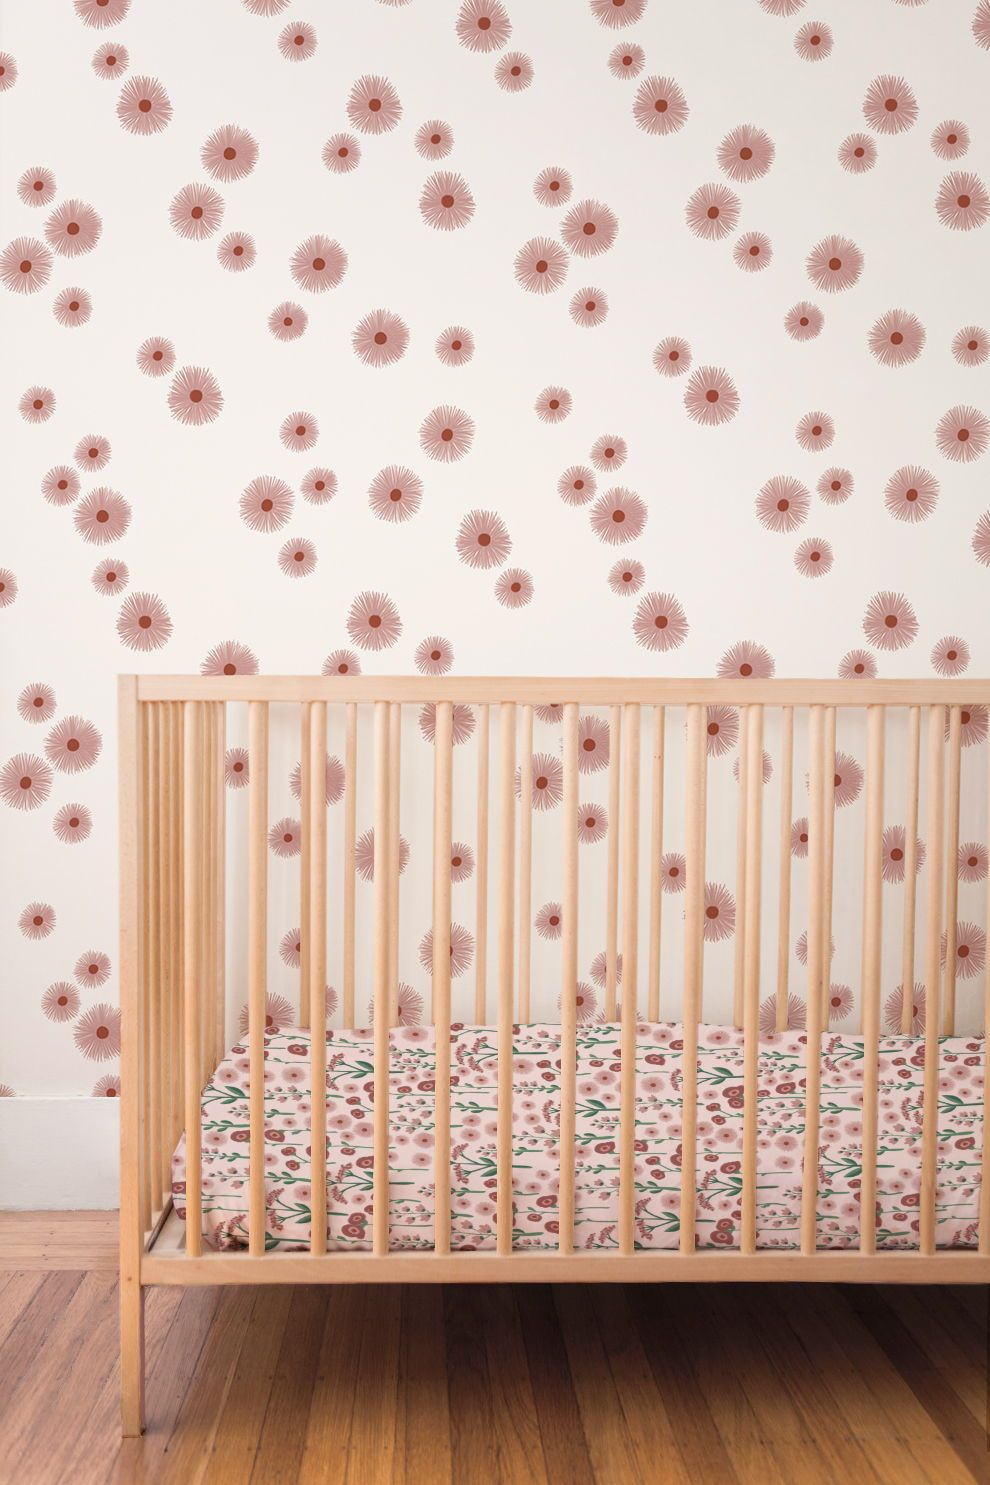 Daisy removable wallpaper pink (English Afternoon